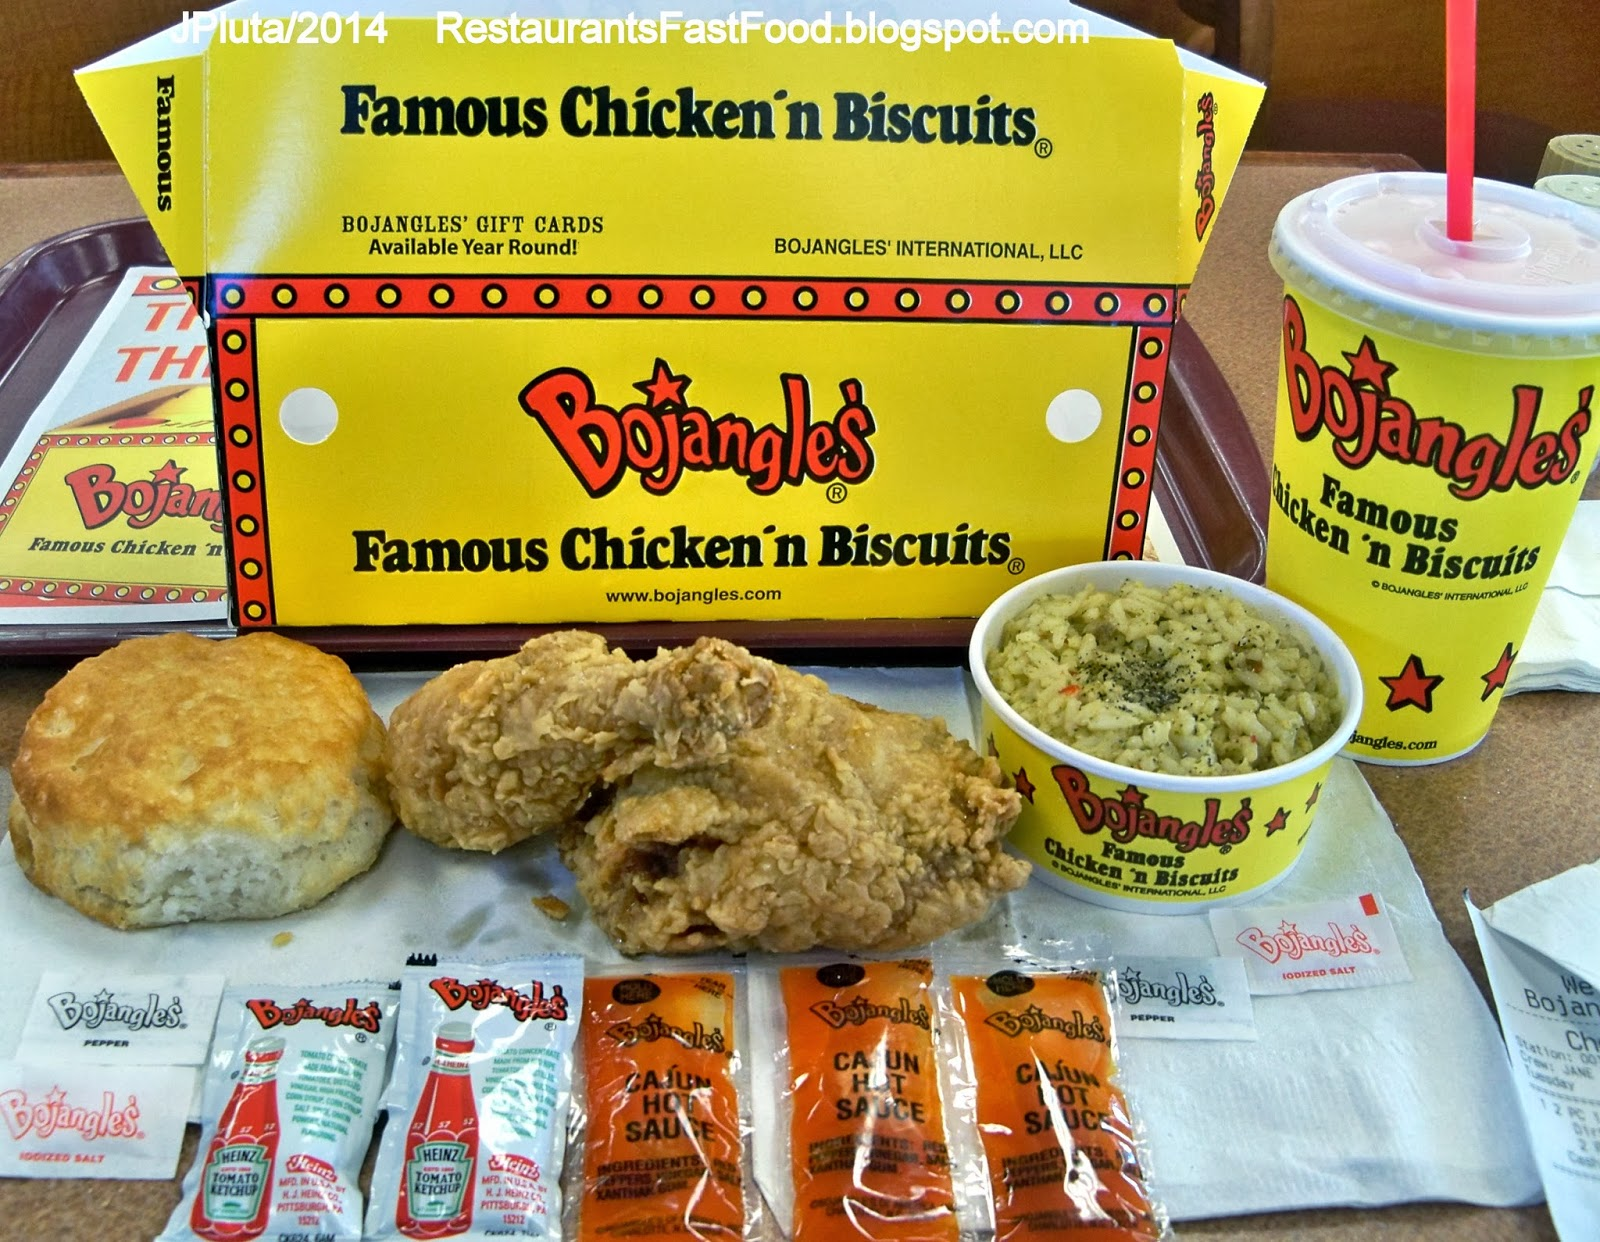 Fast Food Chicken Places In Georgia